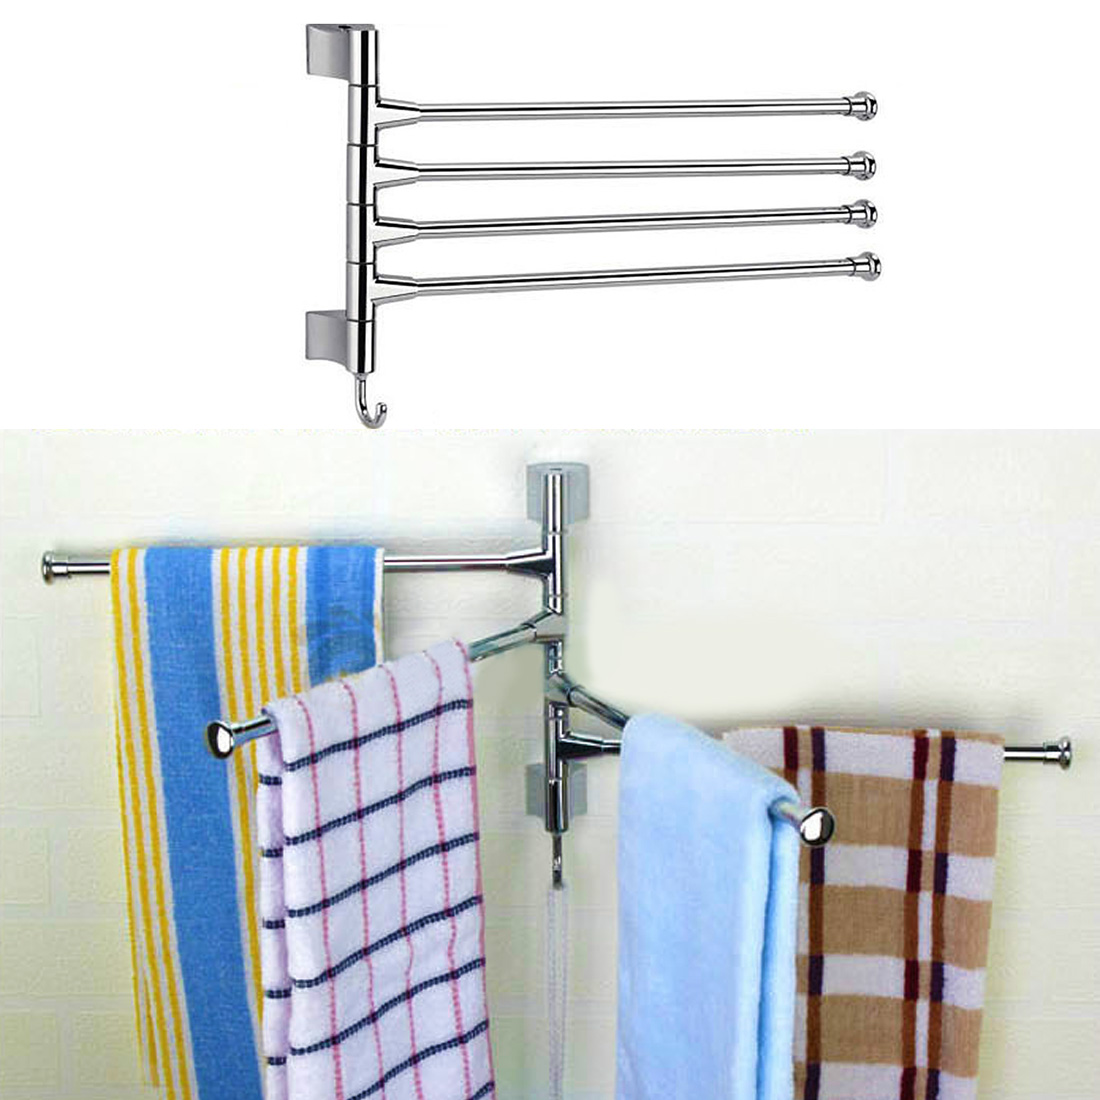 Stainless Steel 2/3/4 Layers Shower Towel Bar Rotating Towel Rack Bathroom Kitchen Towel Polished Rack Holder Hardware Accessor